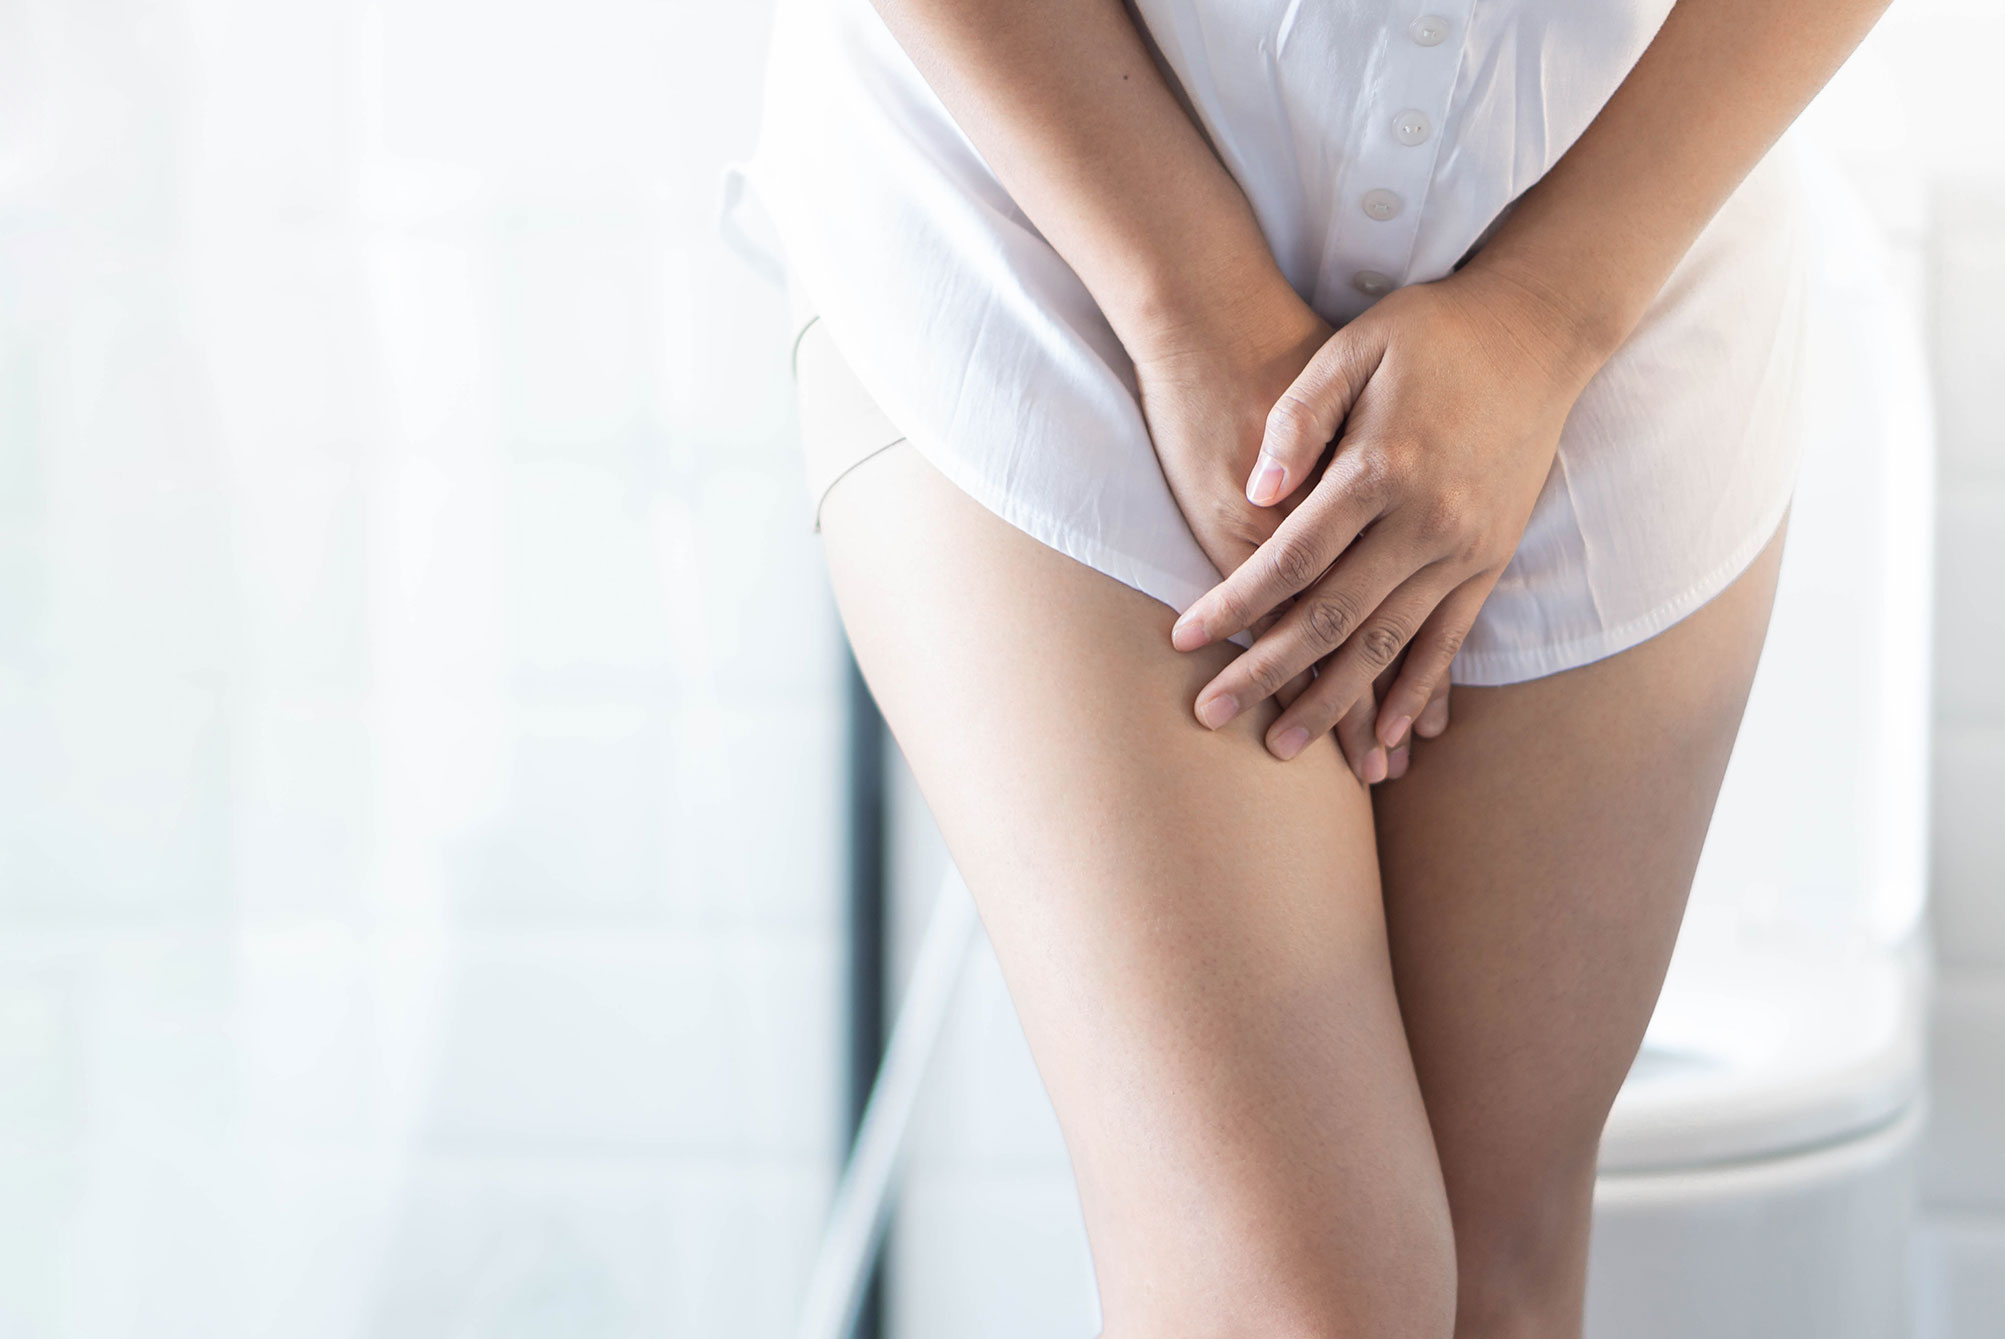 emsella - Woman with urinary problem